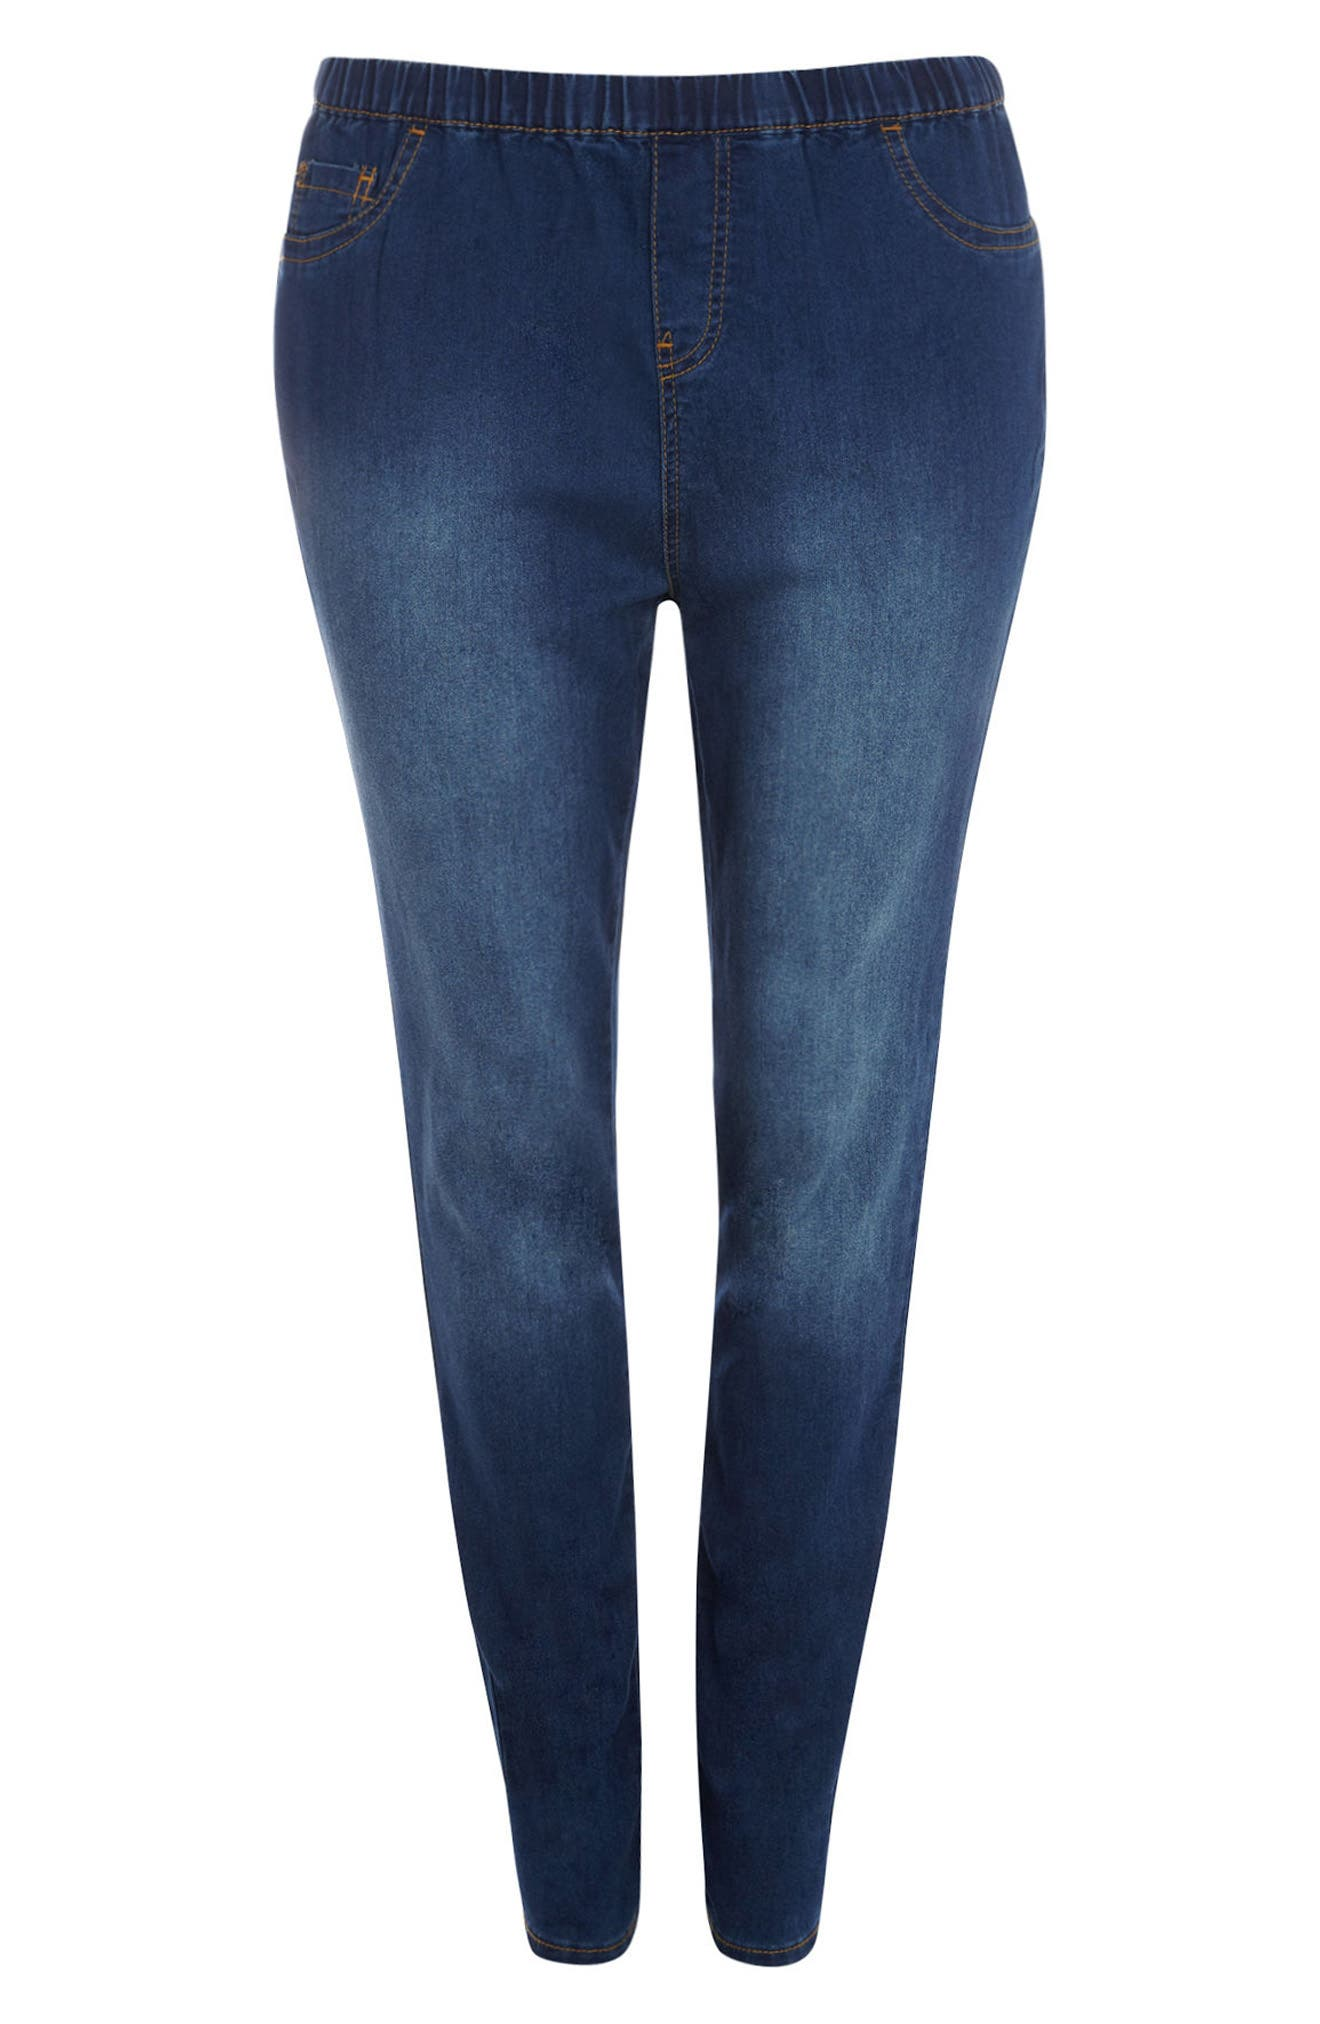 Denim Leggings,                             Alternate thumbnail 5, color,                             Mid Wash